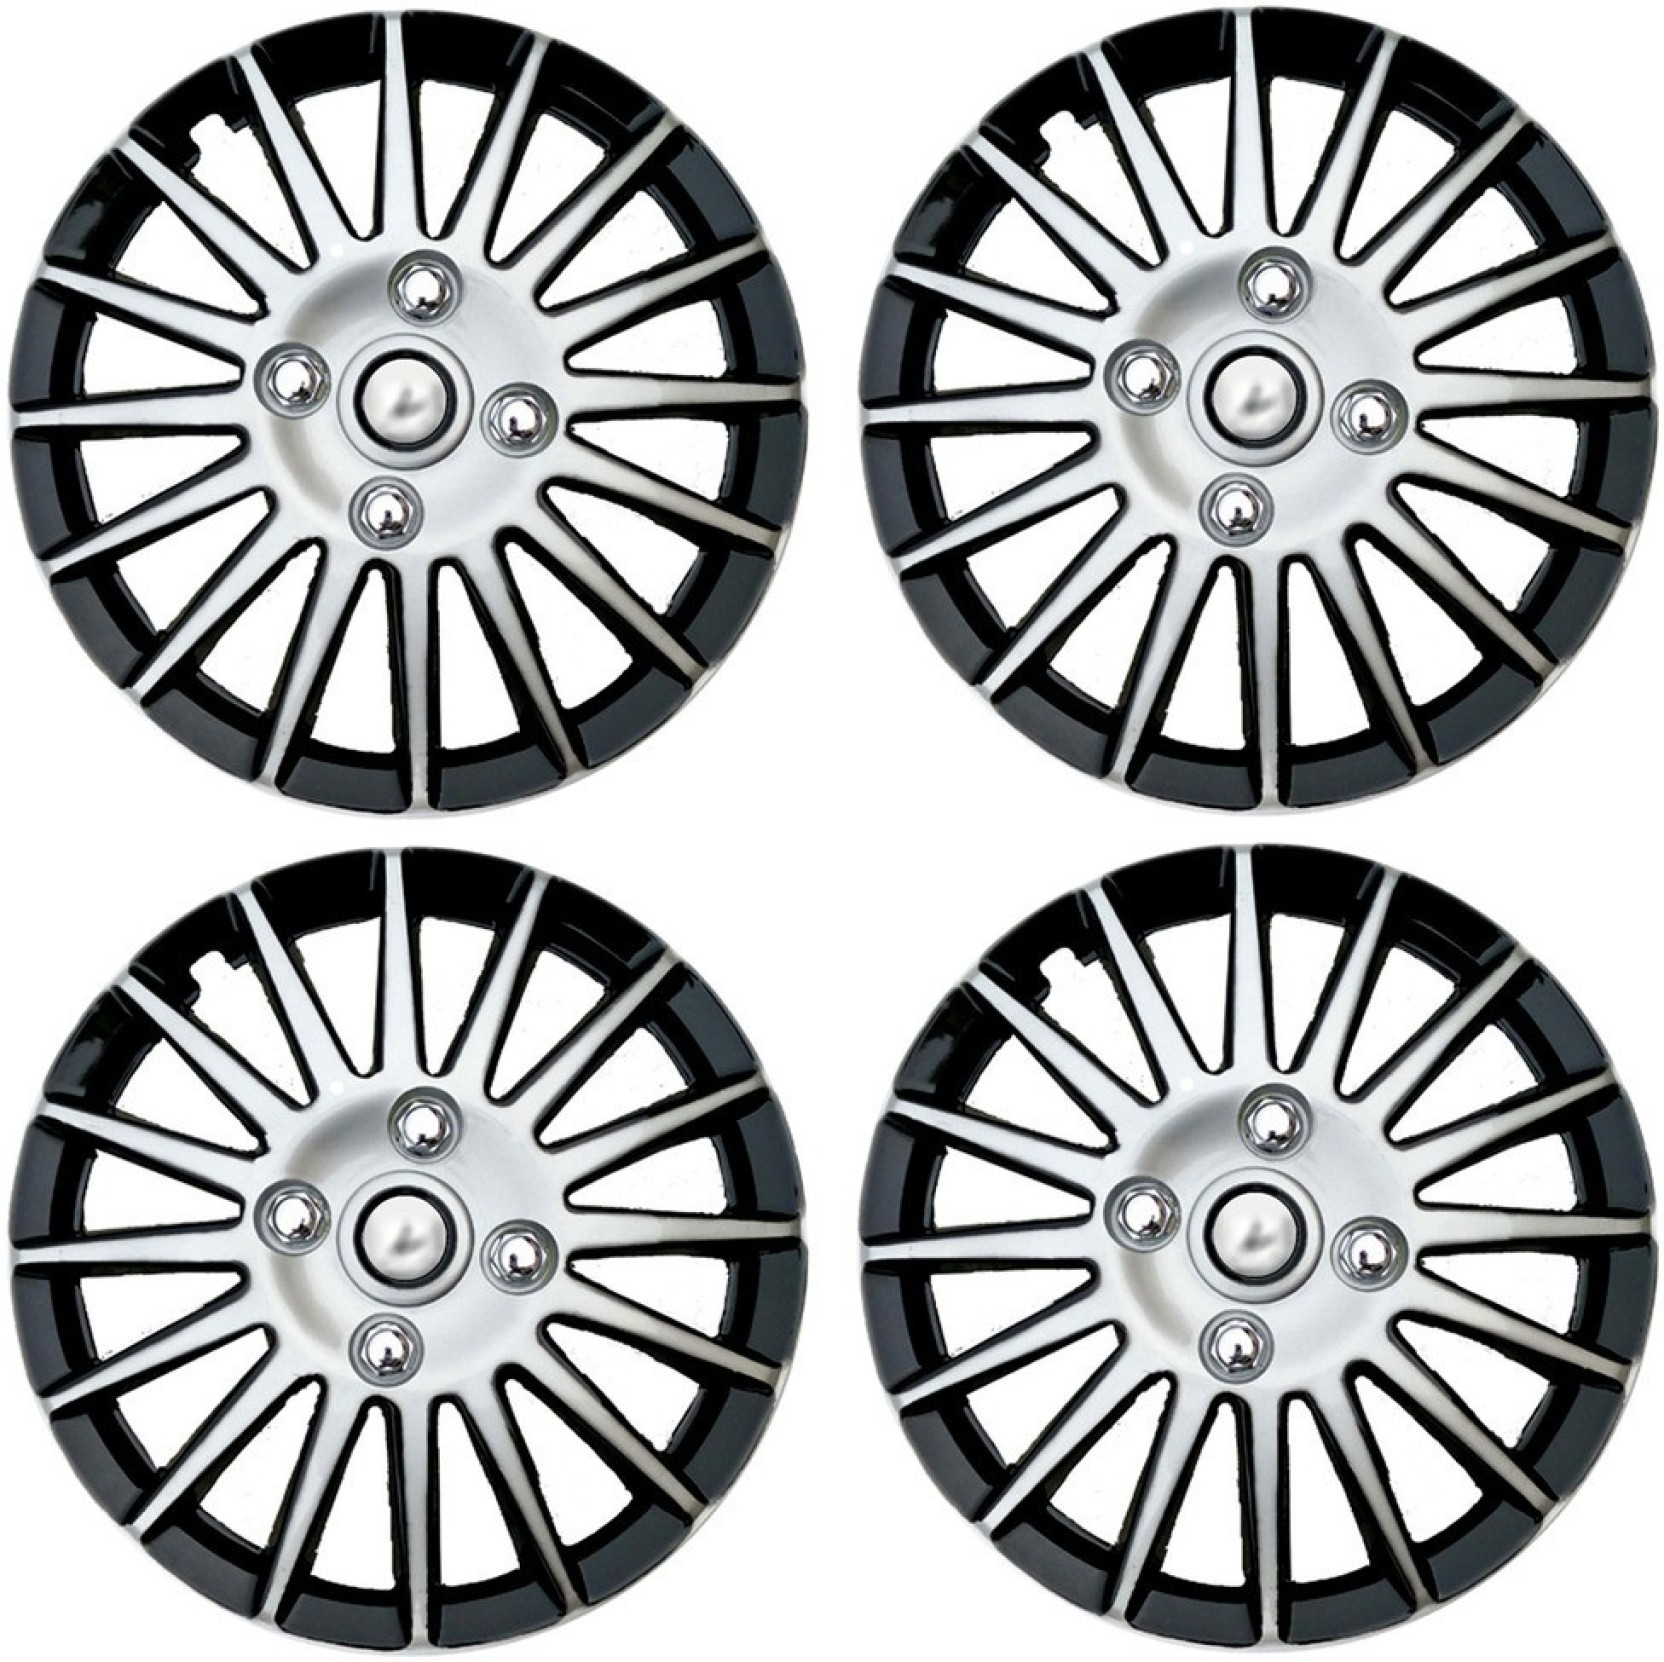 Polo Vivo Hubcaps For Sale Cape Town Toffee Art